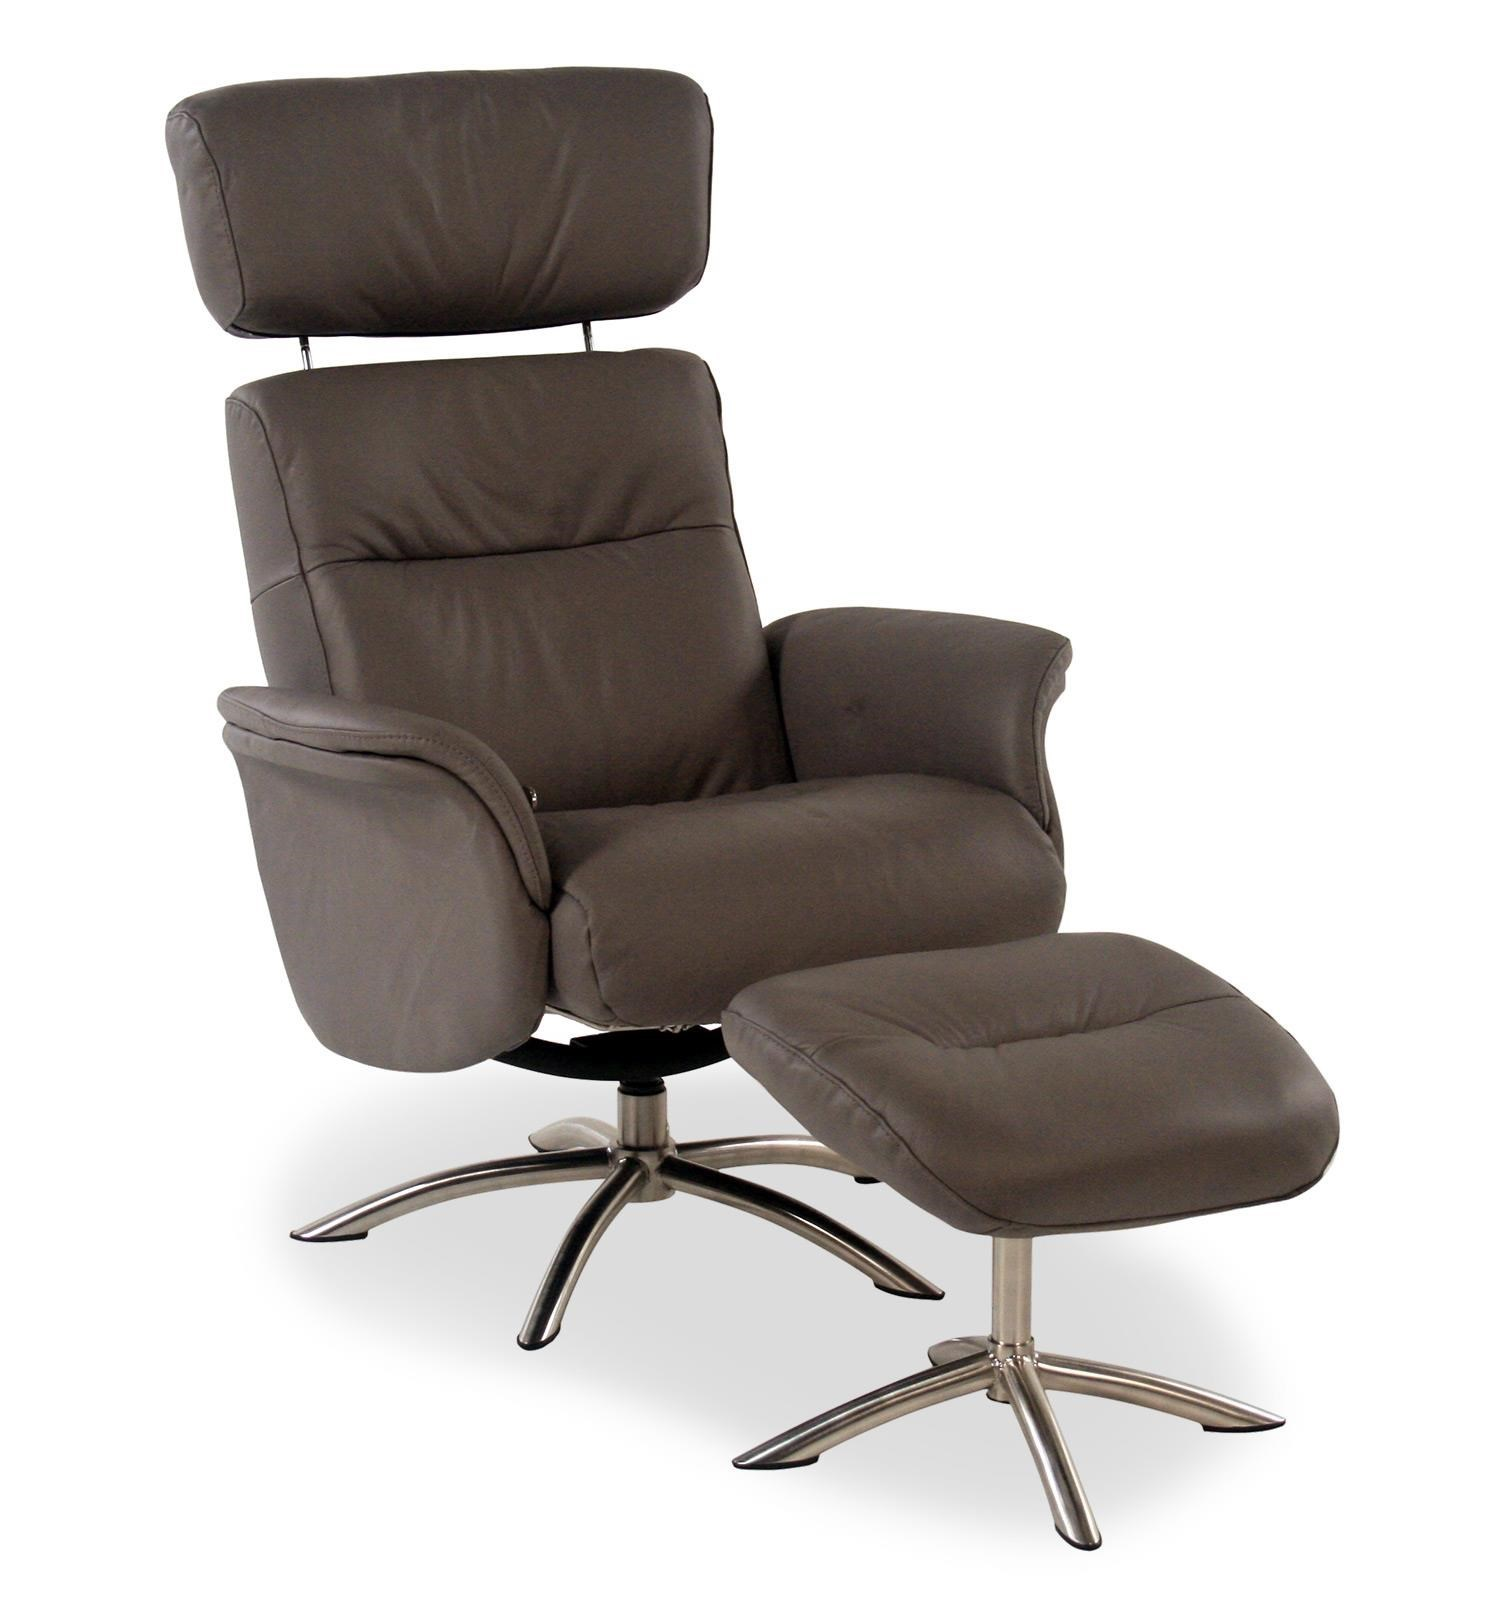 Chair Leather Reclining Swivel Quantum Contemporary Leather Reclining Chair W Swivel Base And Ottoman By Palliser At Rotmans